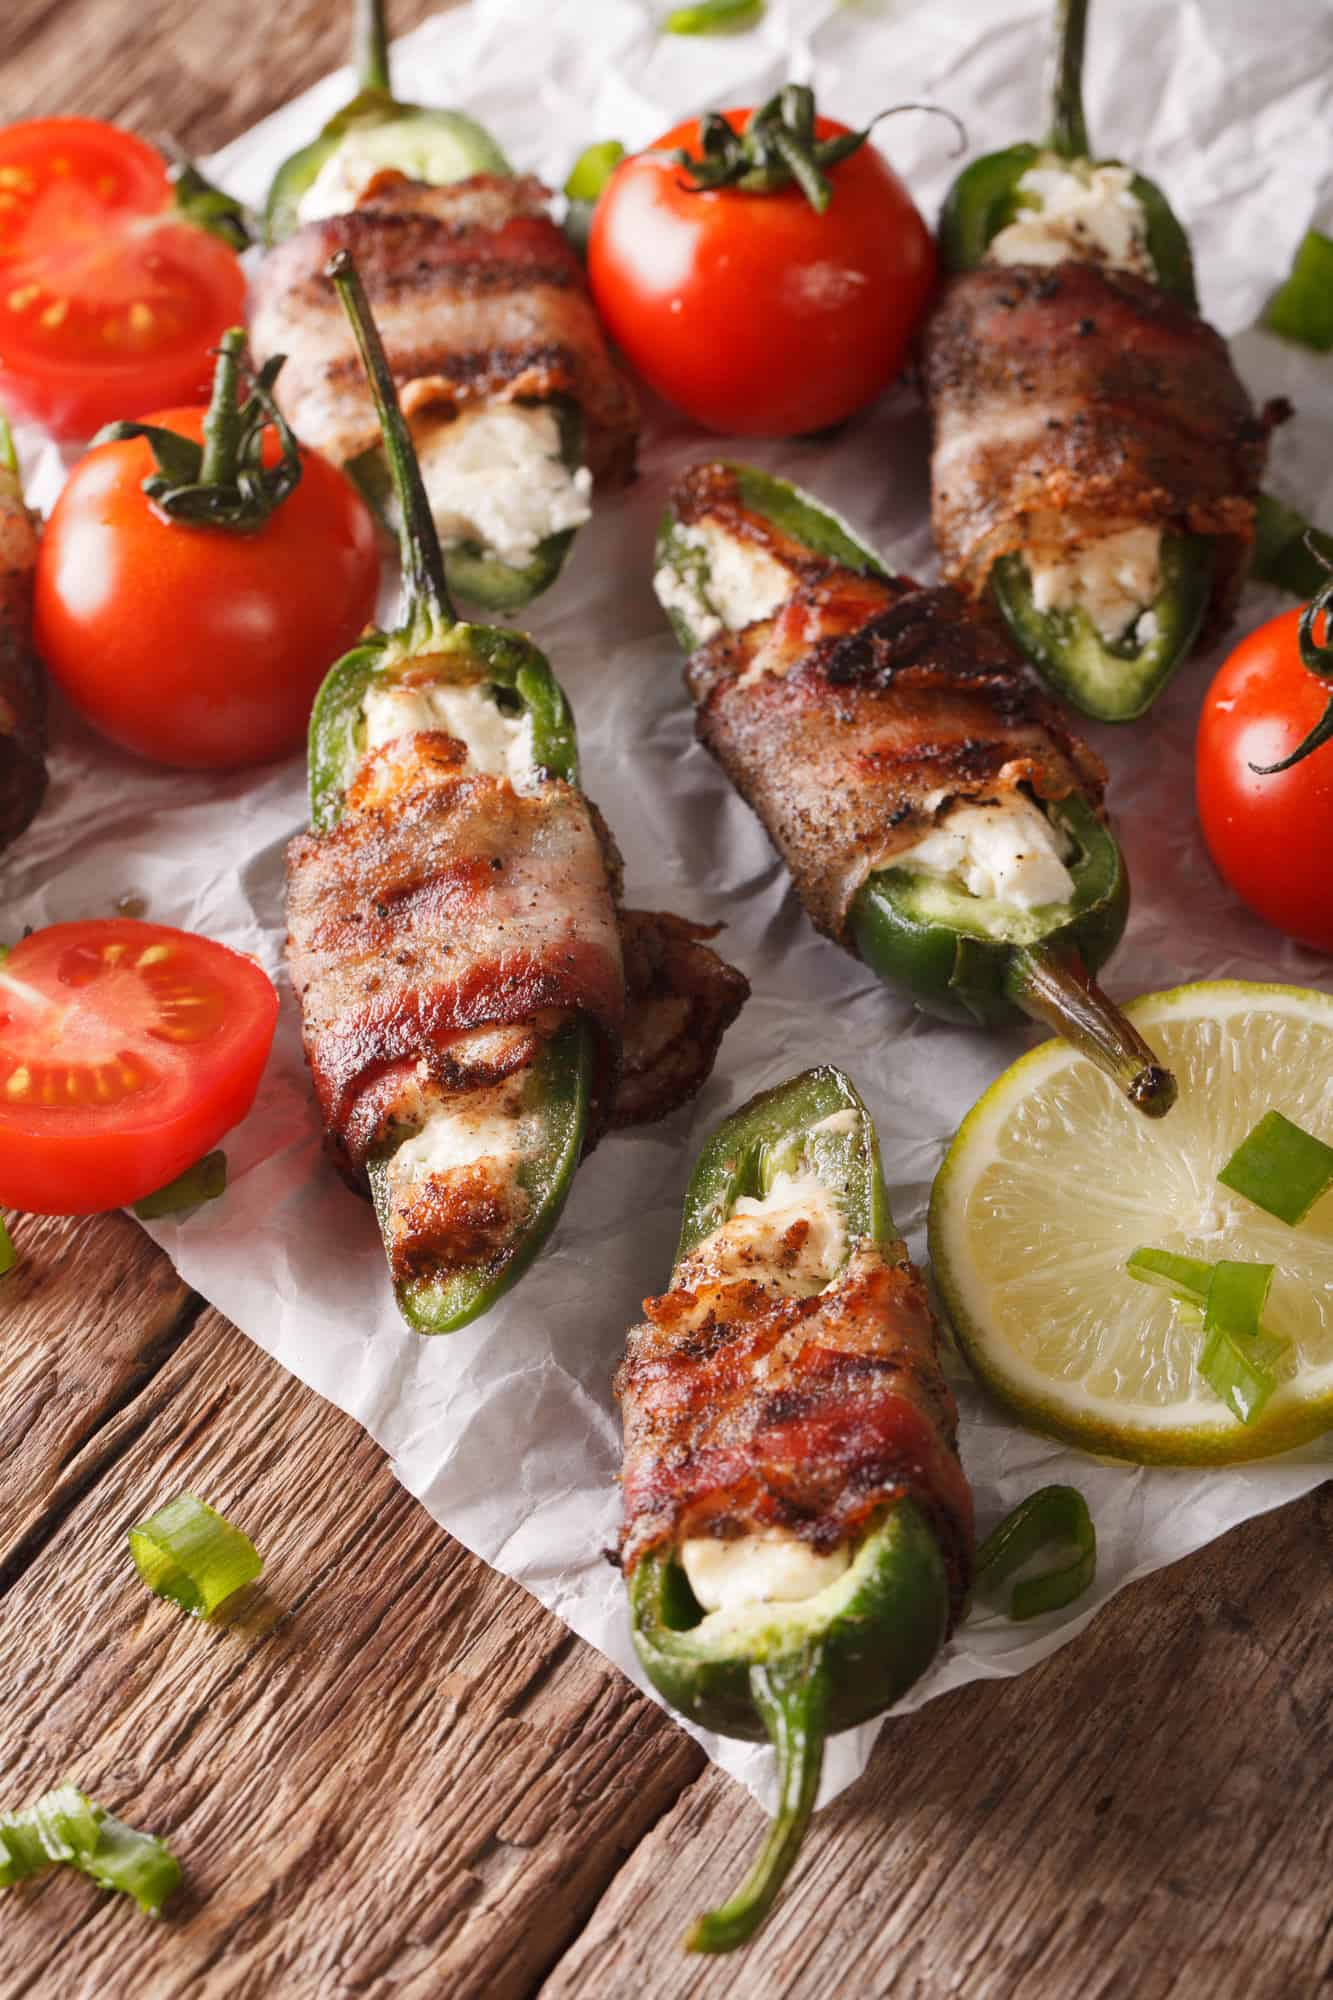 These easy low carb bacon wrapped jalapeno poppers with cream cheese are the perfect snack for the keto diet or your next get together with friends. Must try!